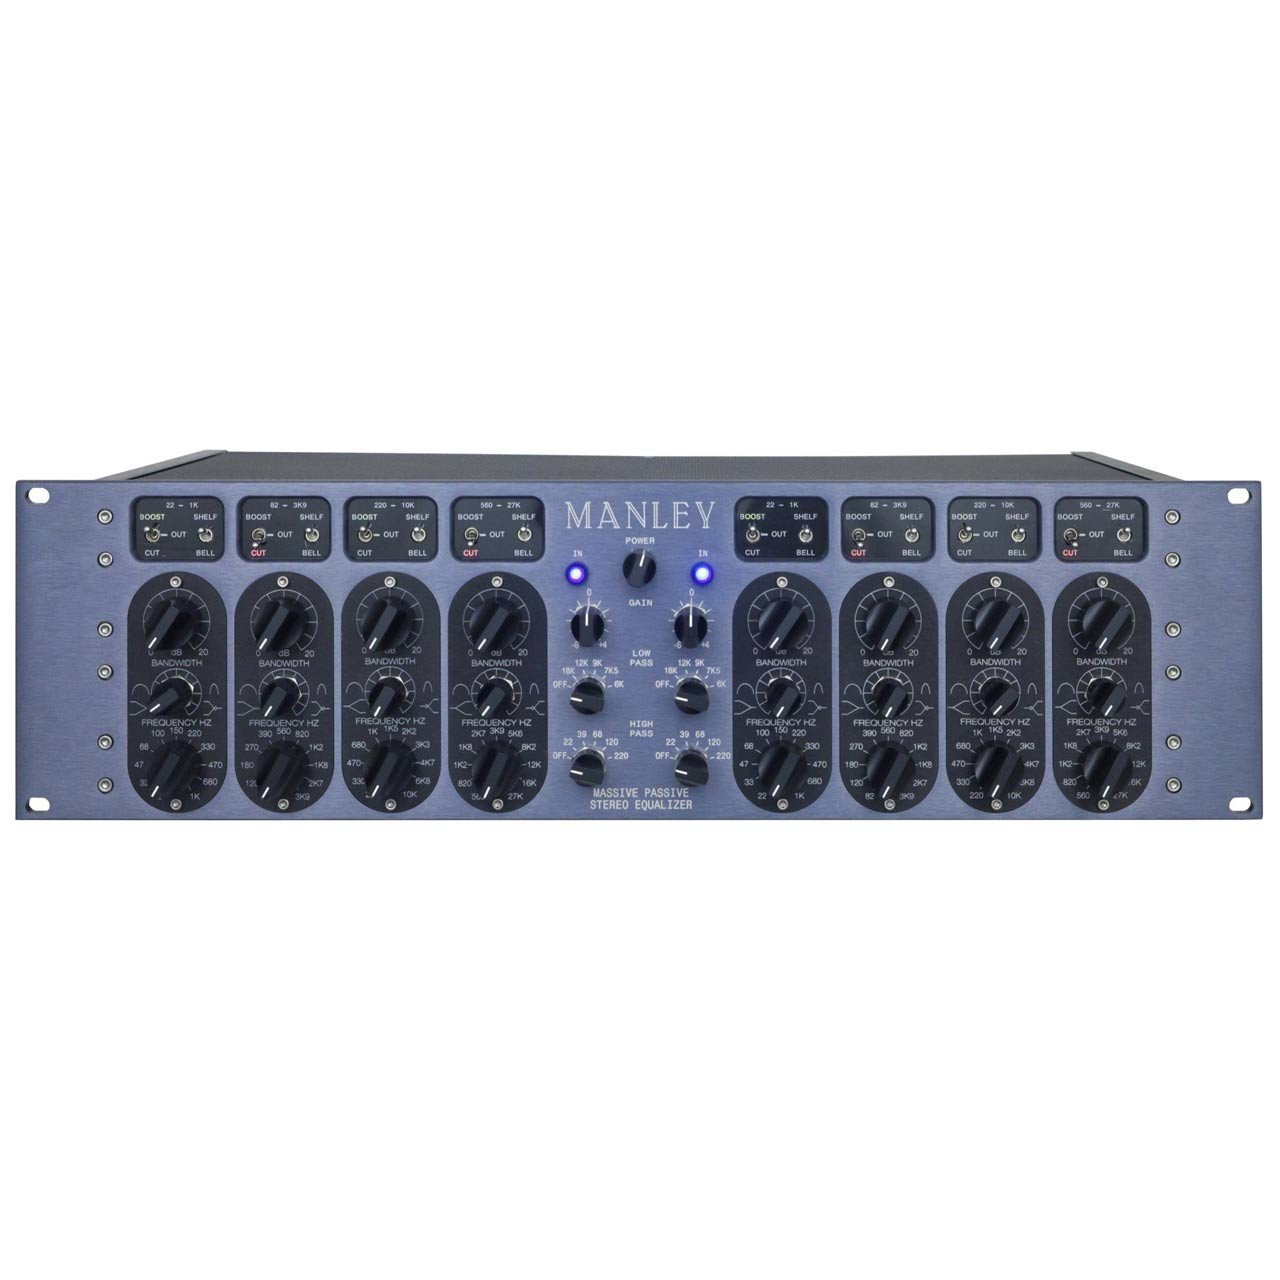 Manley Massive Passive EQ 2-channel 4-band Equalizer